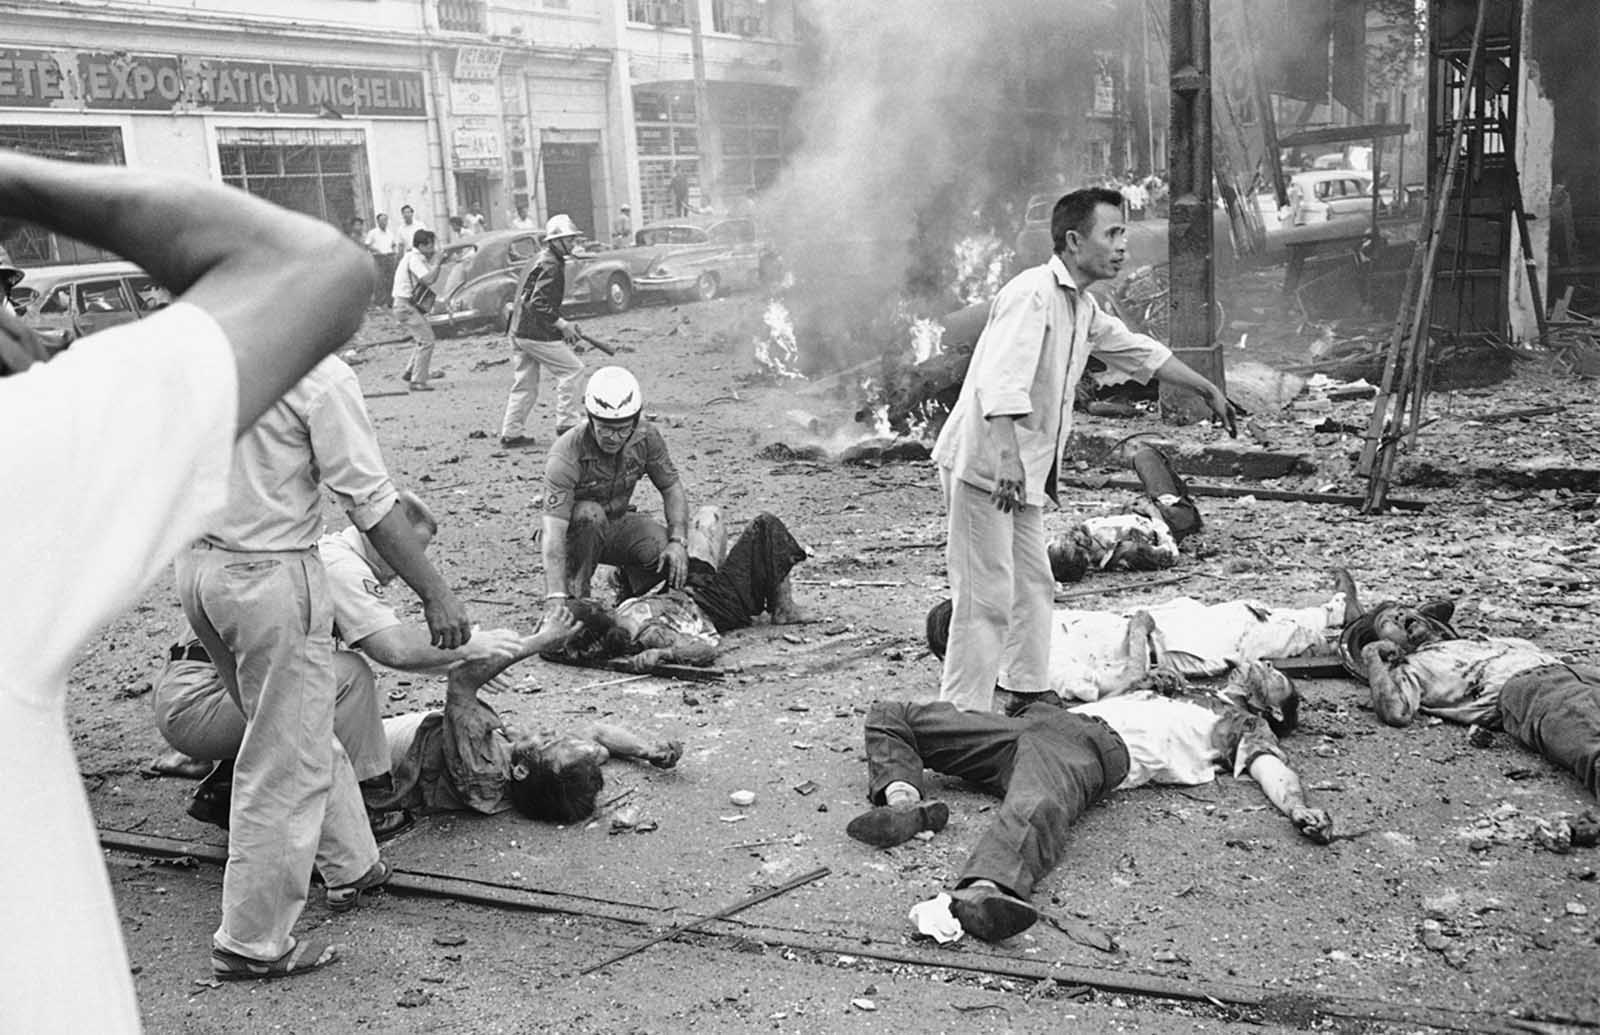 Injured Vietnamese receive aid as they lie on the street after a bomb explosion outside the U.S. embassy in Saigon, Vietnam, on March 30, 1965. Smoke rises from wreckage in background. At least two Americans and several Vietnamese were killed in the bombing.